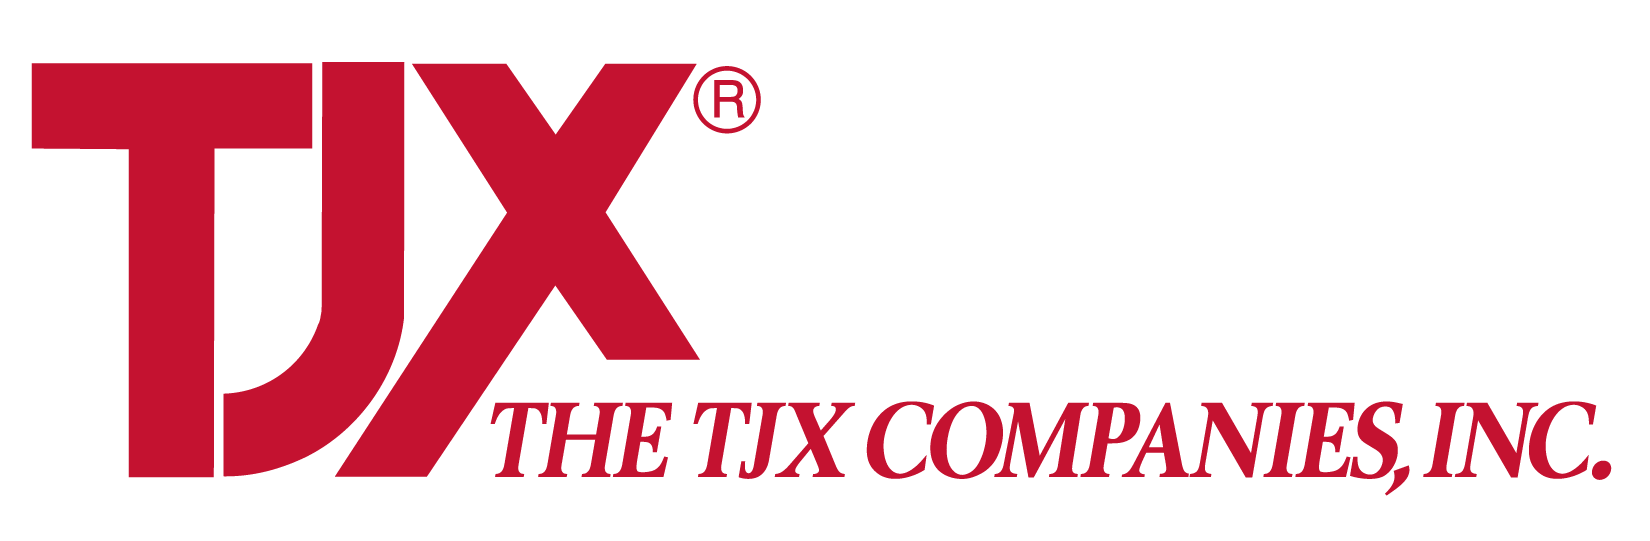 Tjx Stock Quote The Tjx Companies Tjx Another Good Buy For A Recession  Stock